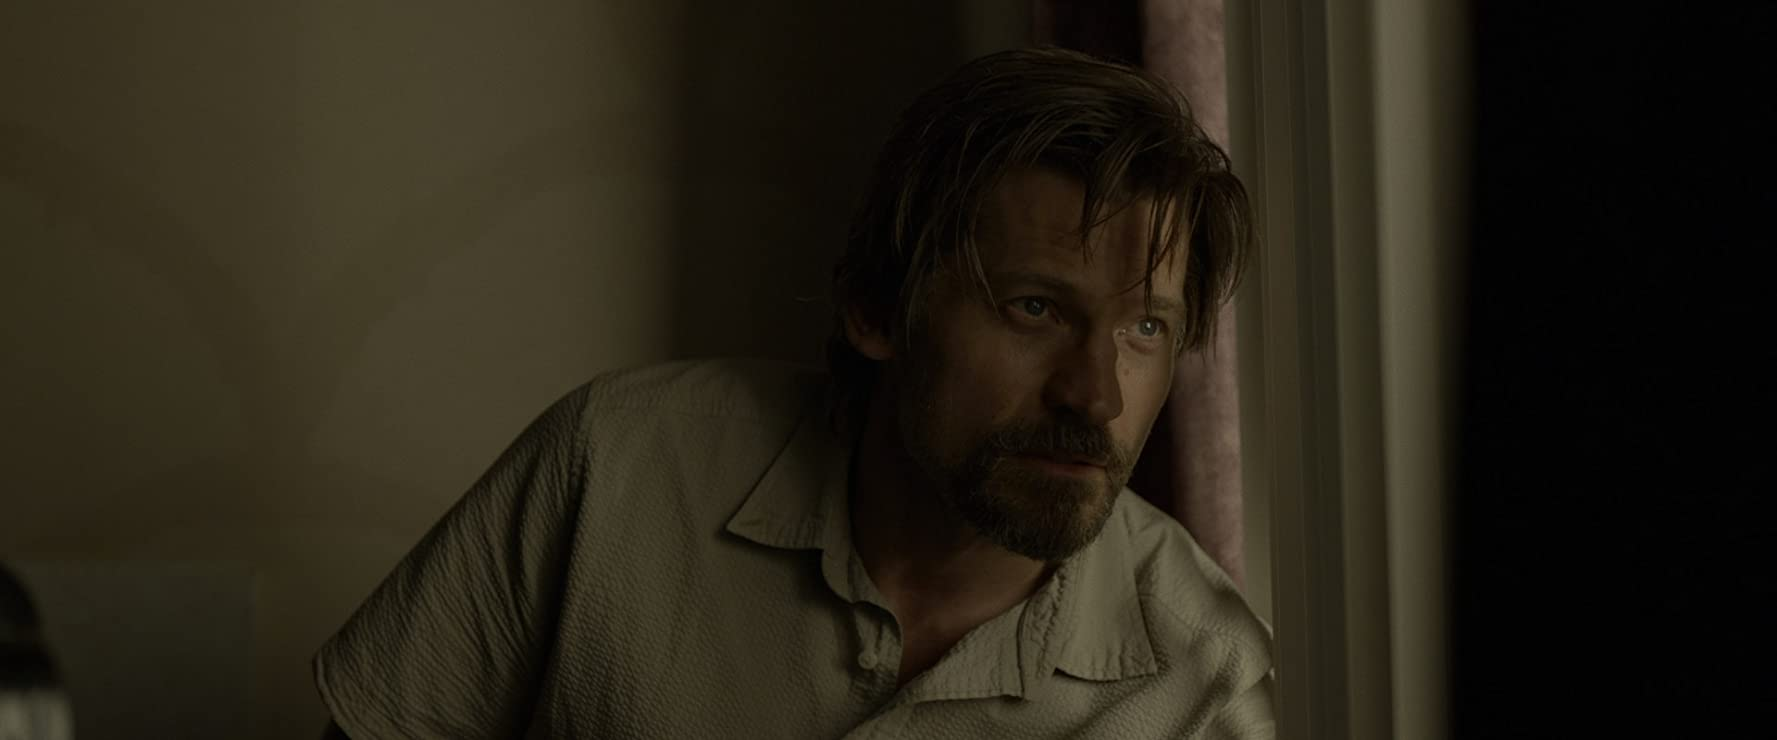 Delitos menores (Small Crimes)